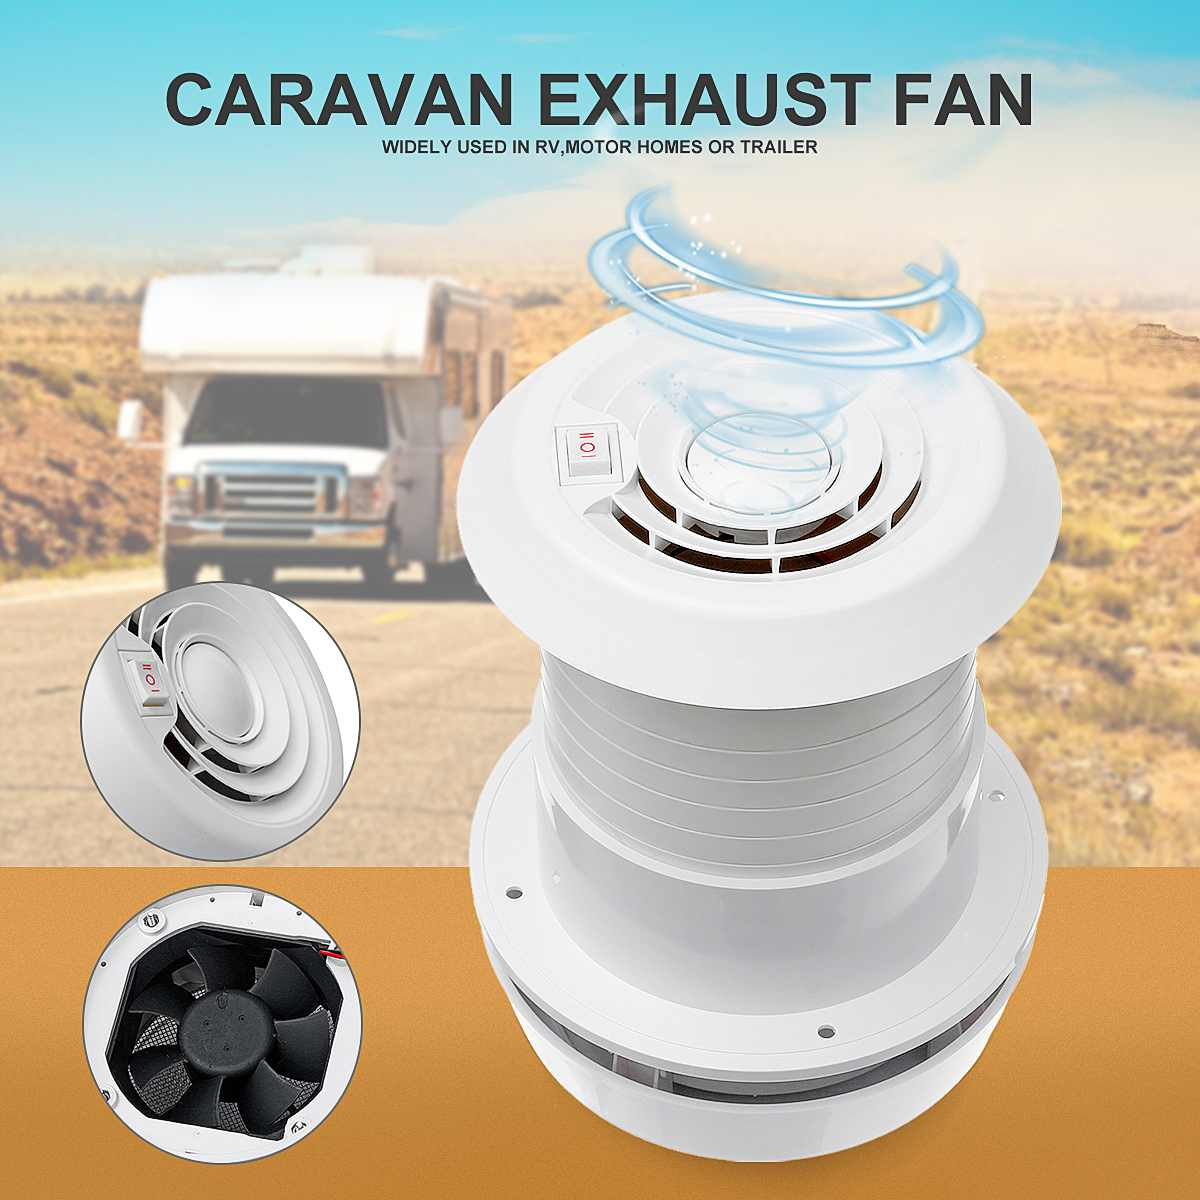 12V RV Energy-saving Motorhome Noiseless Roof Vent Ventilation Cooling Exhaust Fan For Travel Motor Homes Trailer